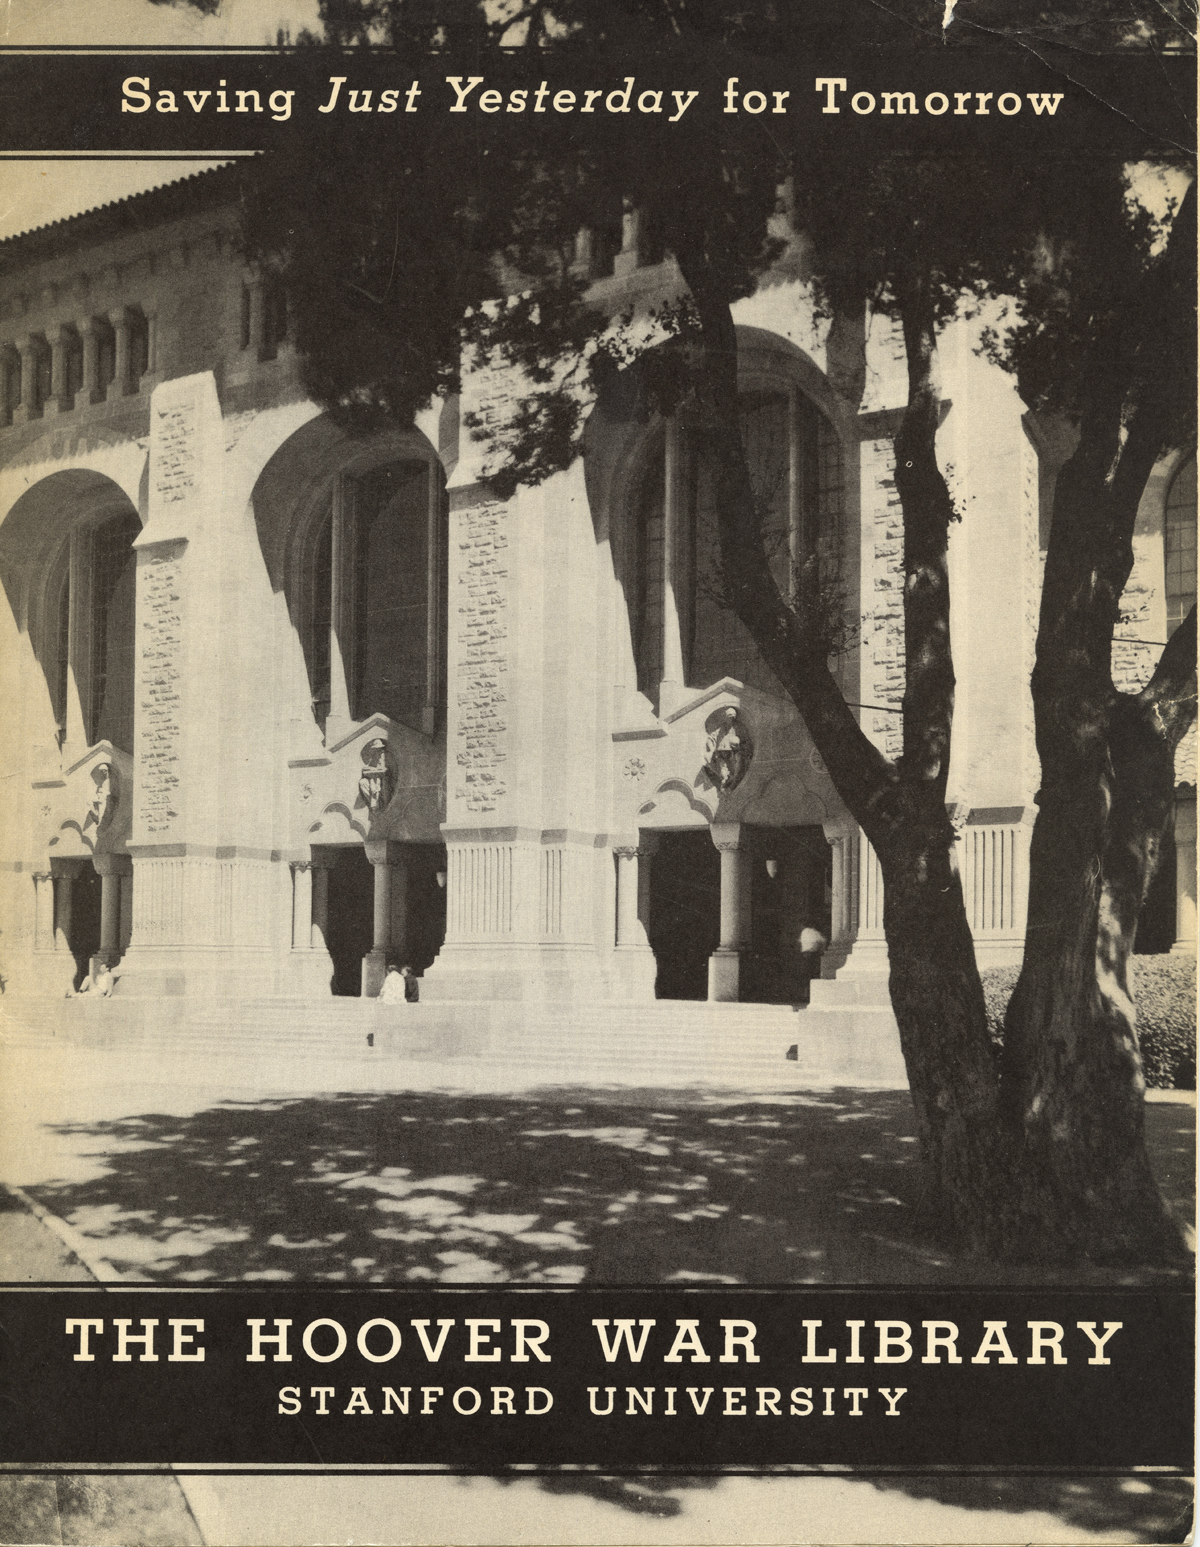 The Hoover War Library